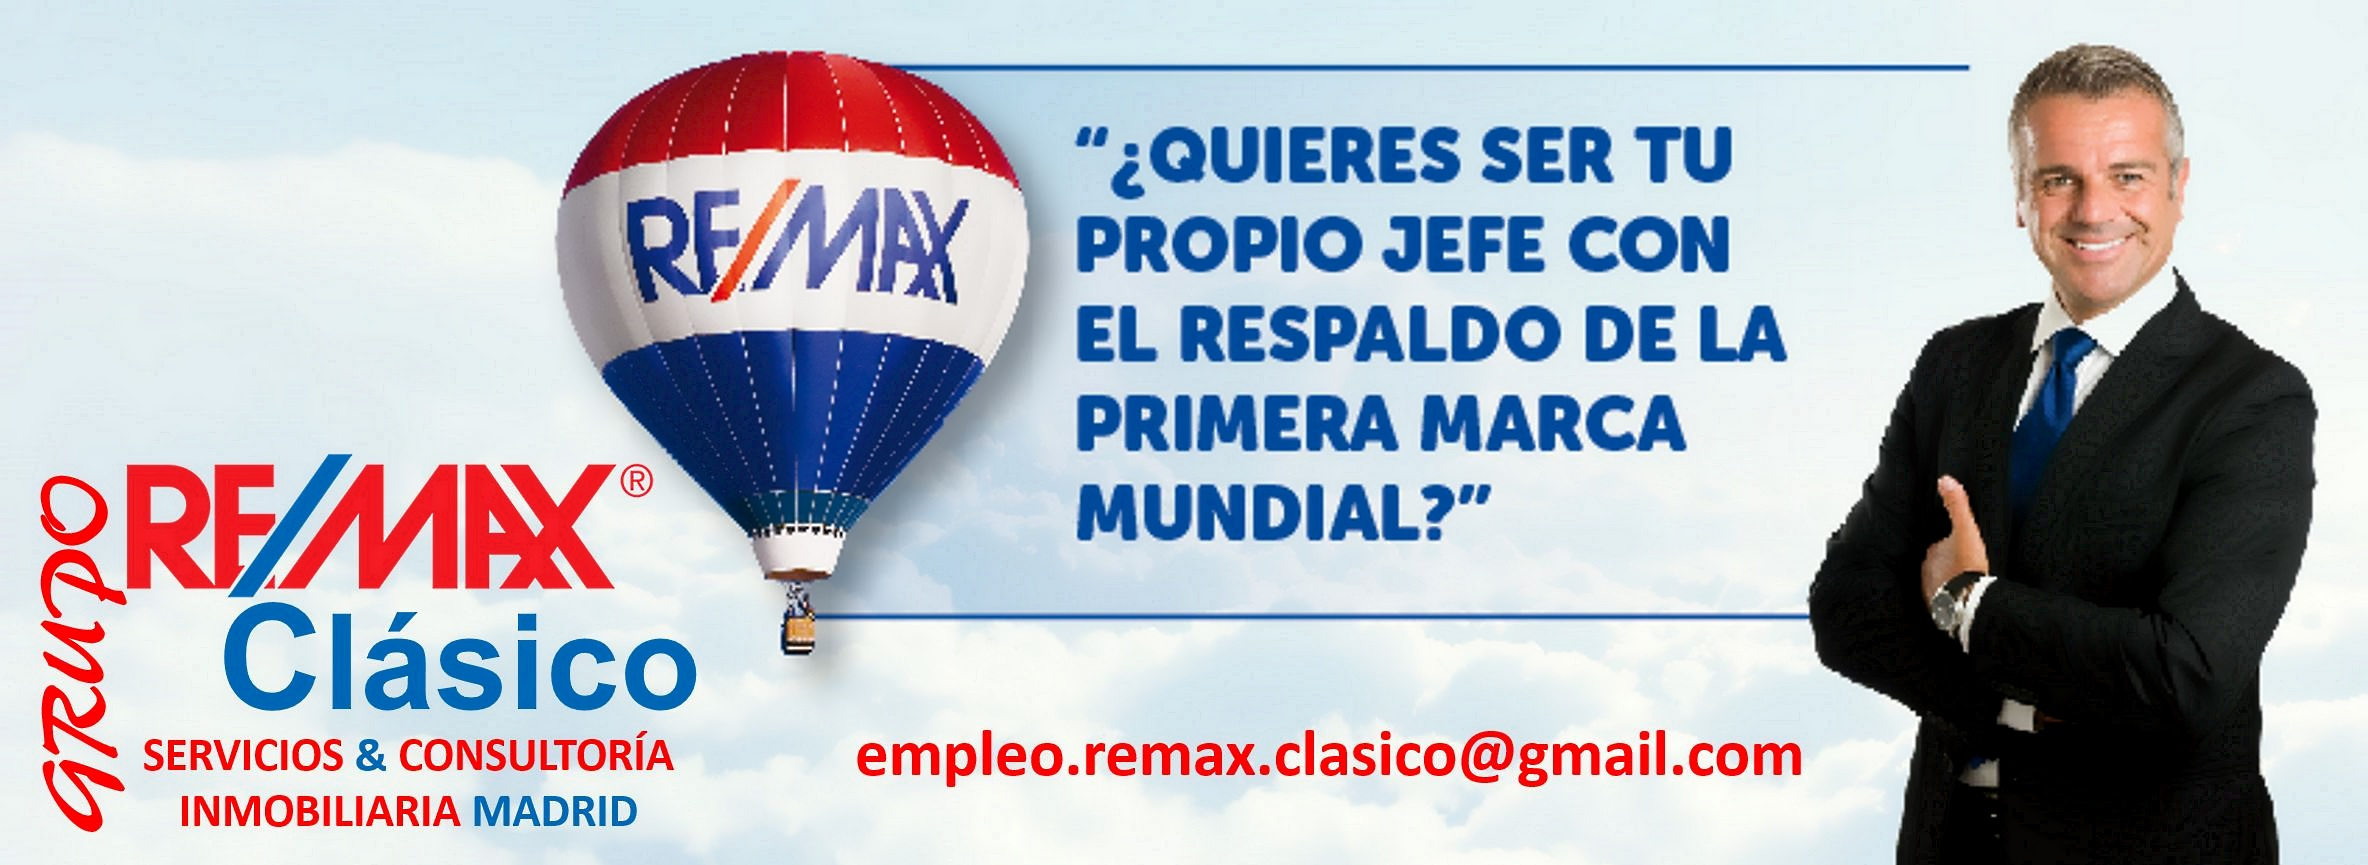 Remax Grupo Clásico Madrid